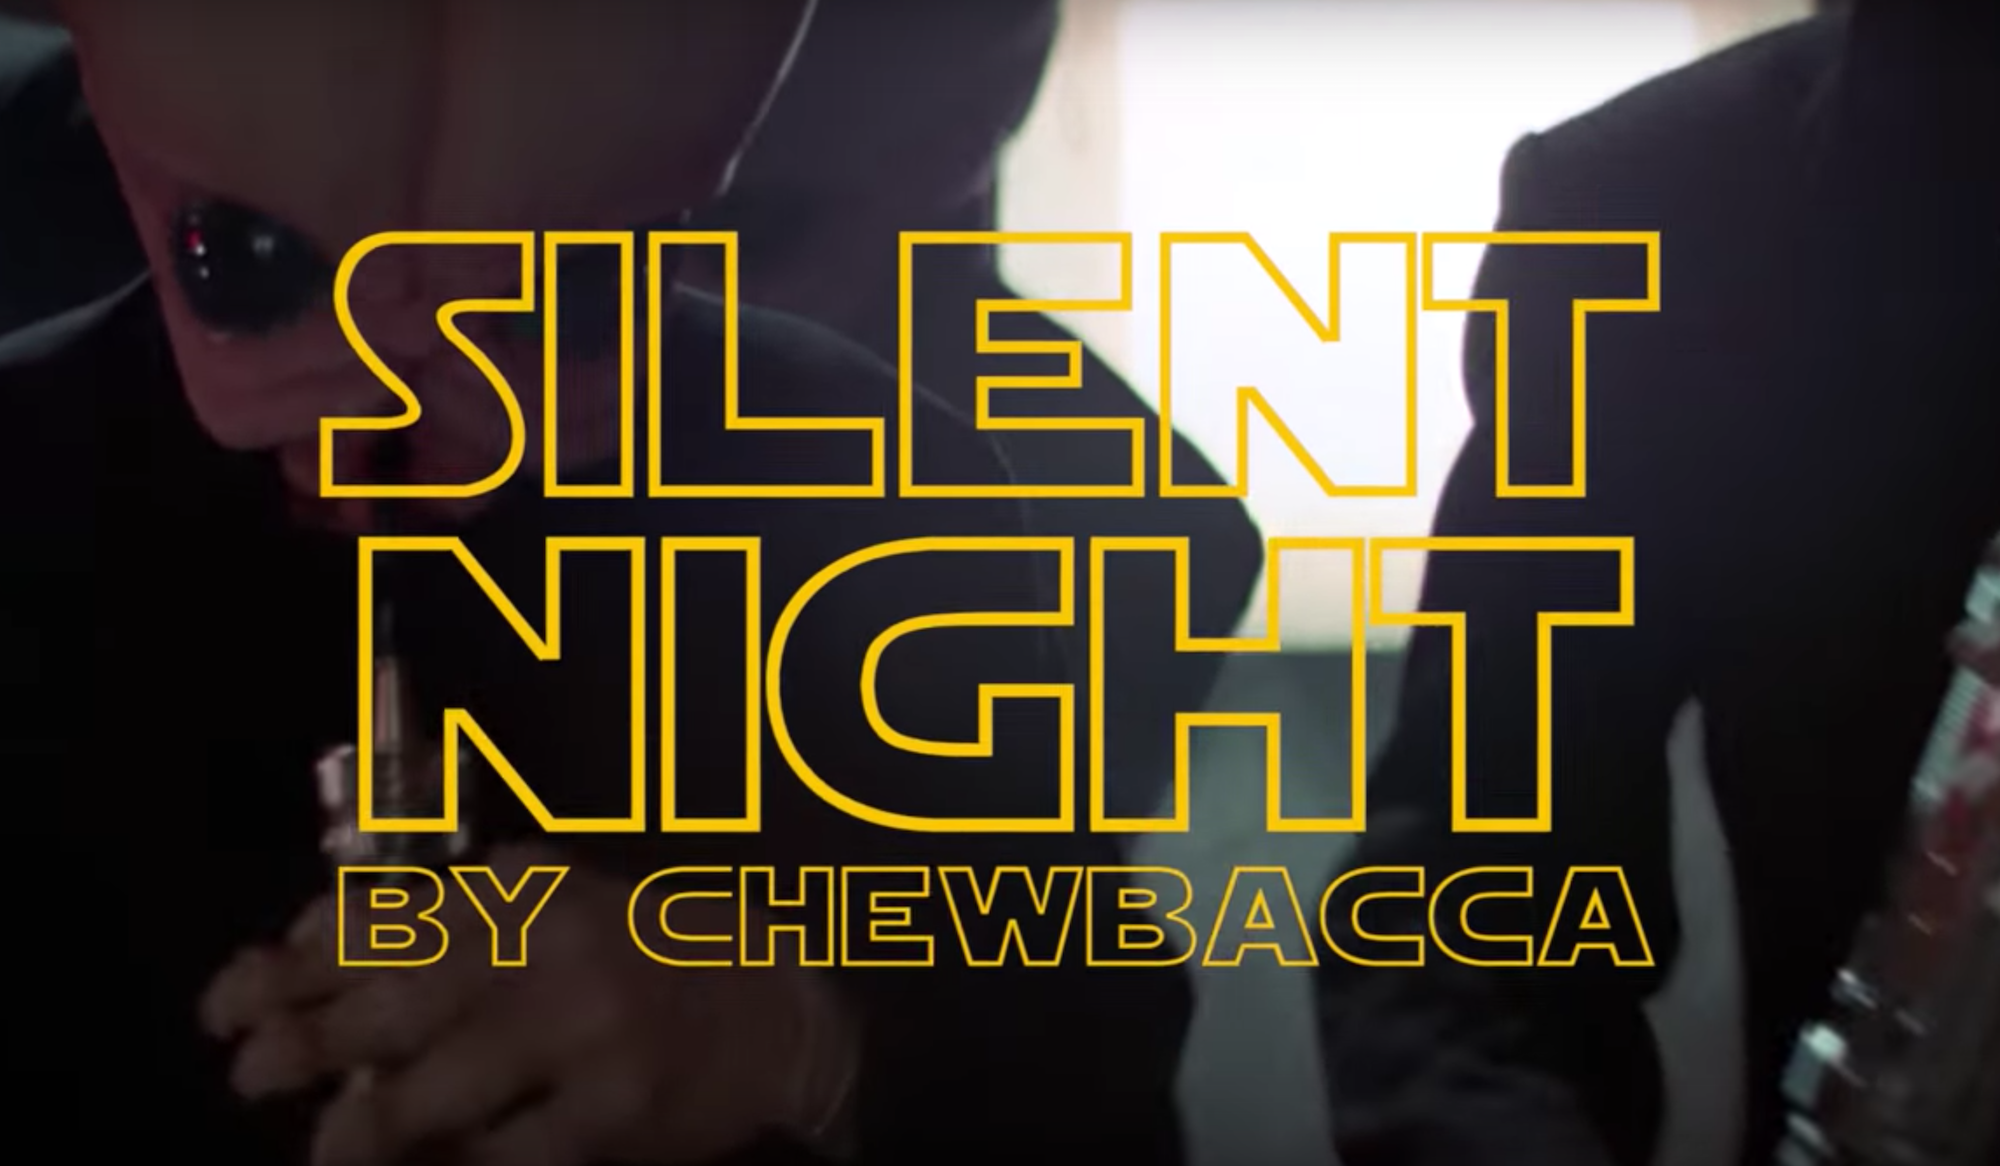 Chewbacca canta 'Silent Night'